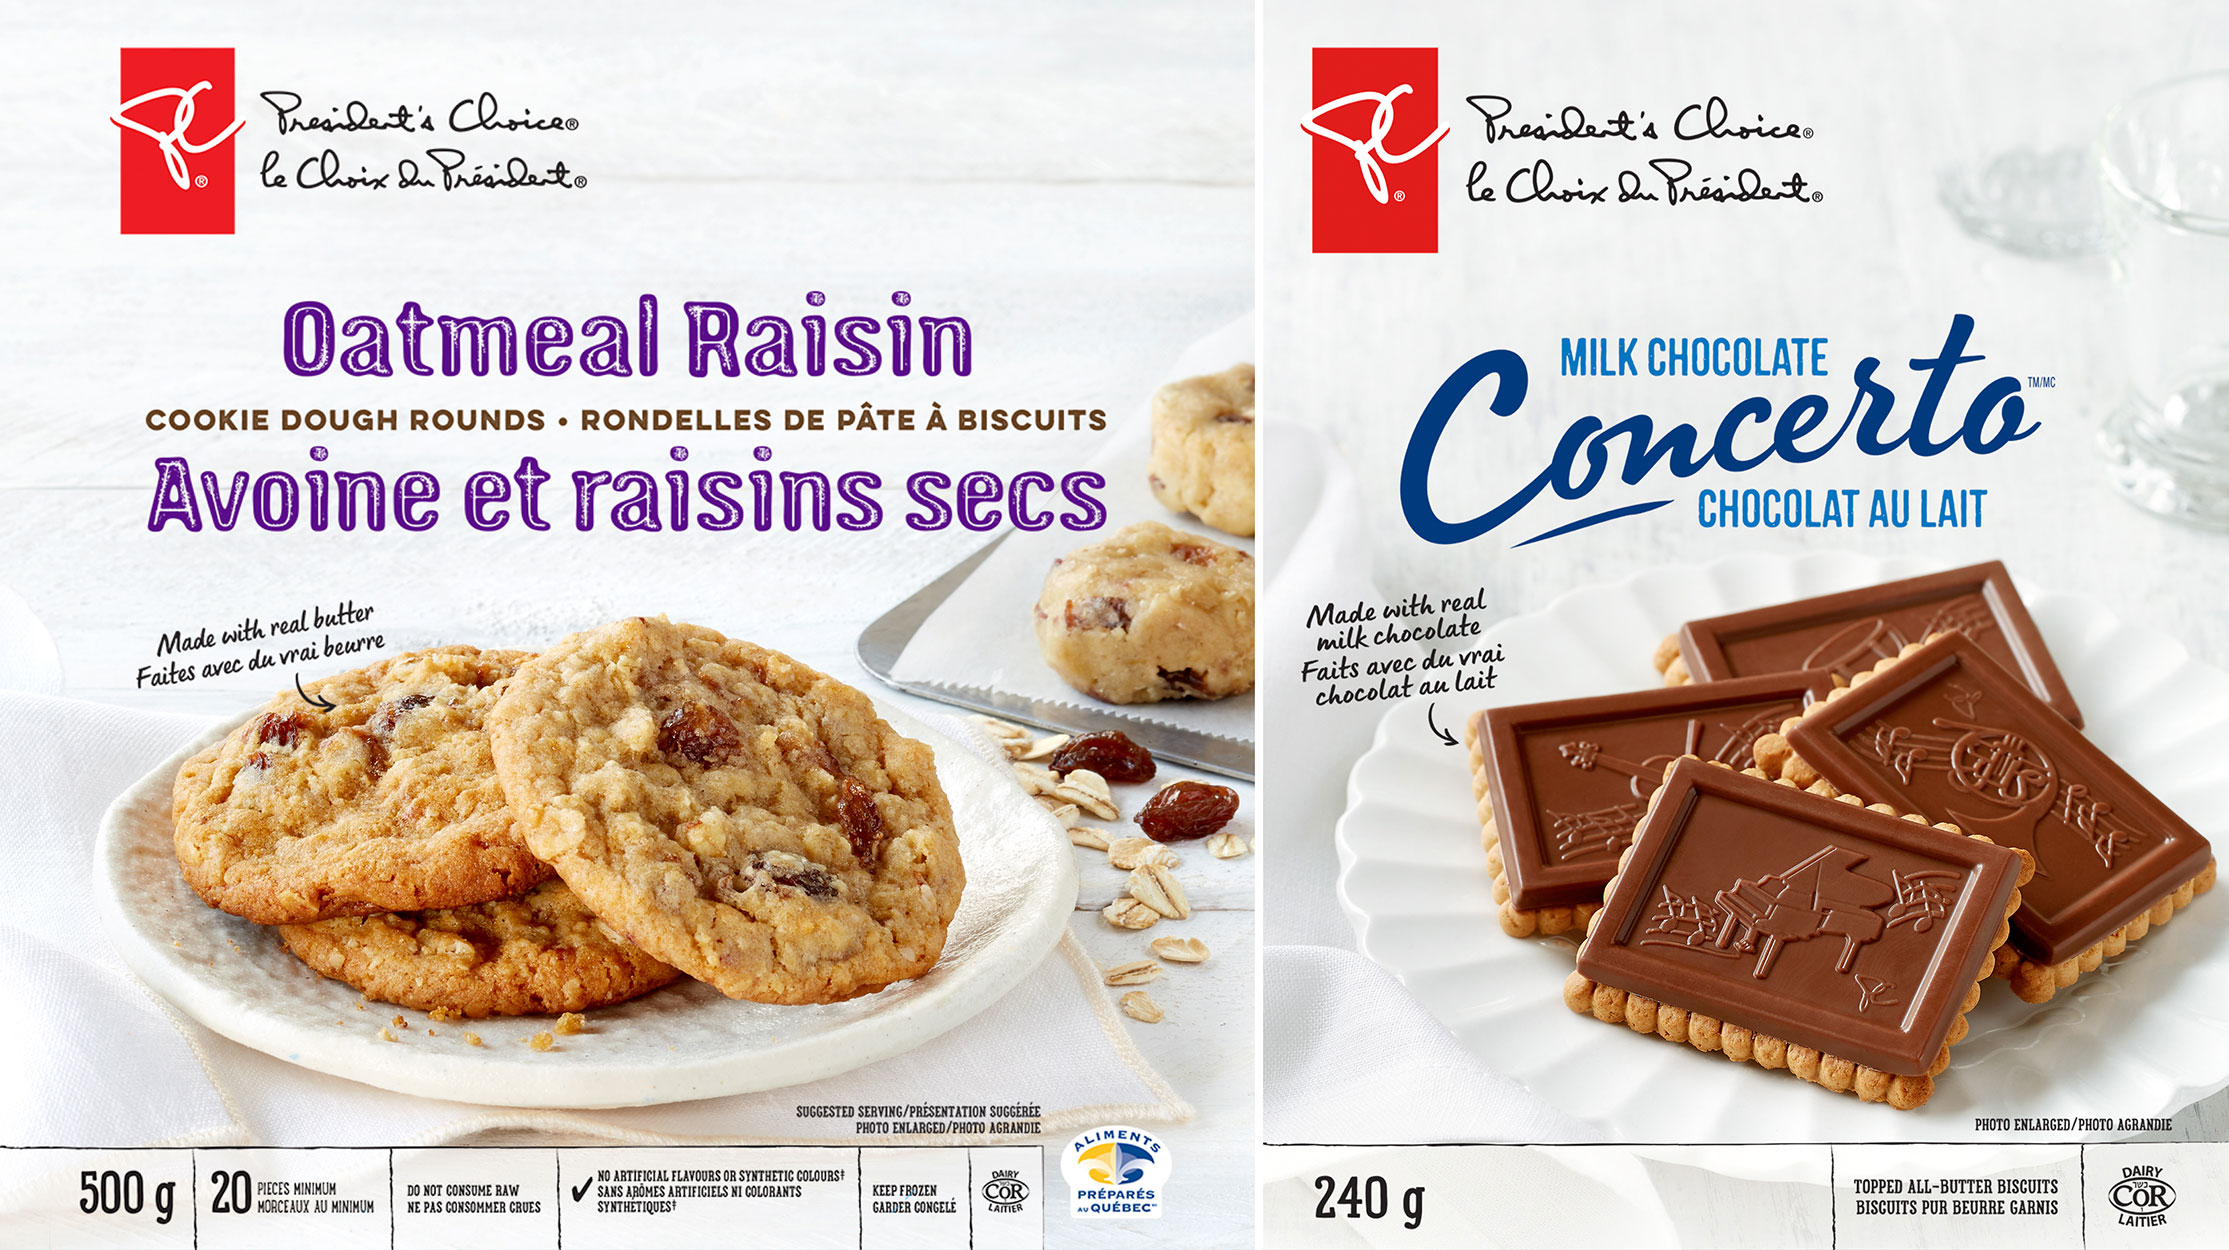 632894_PC_FrozenCookies_OatmealRaisin-FINAL_630007_PC_ConcertoCookies_MilkChoco_DUO_WEB